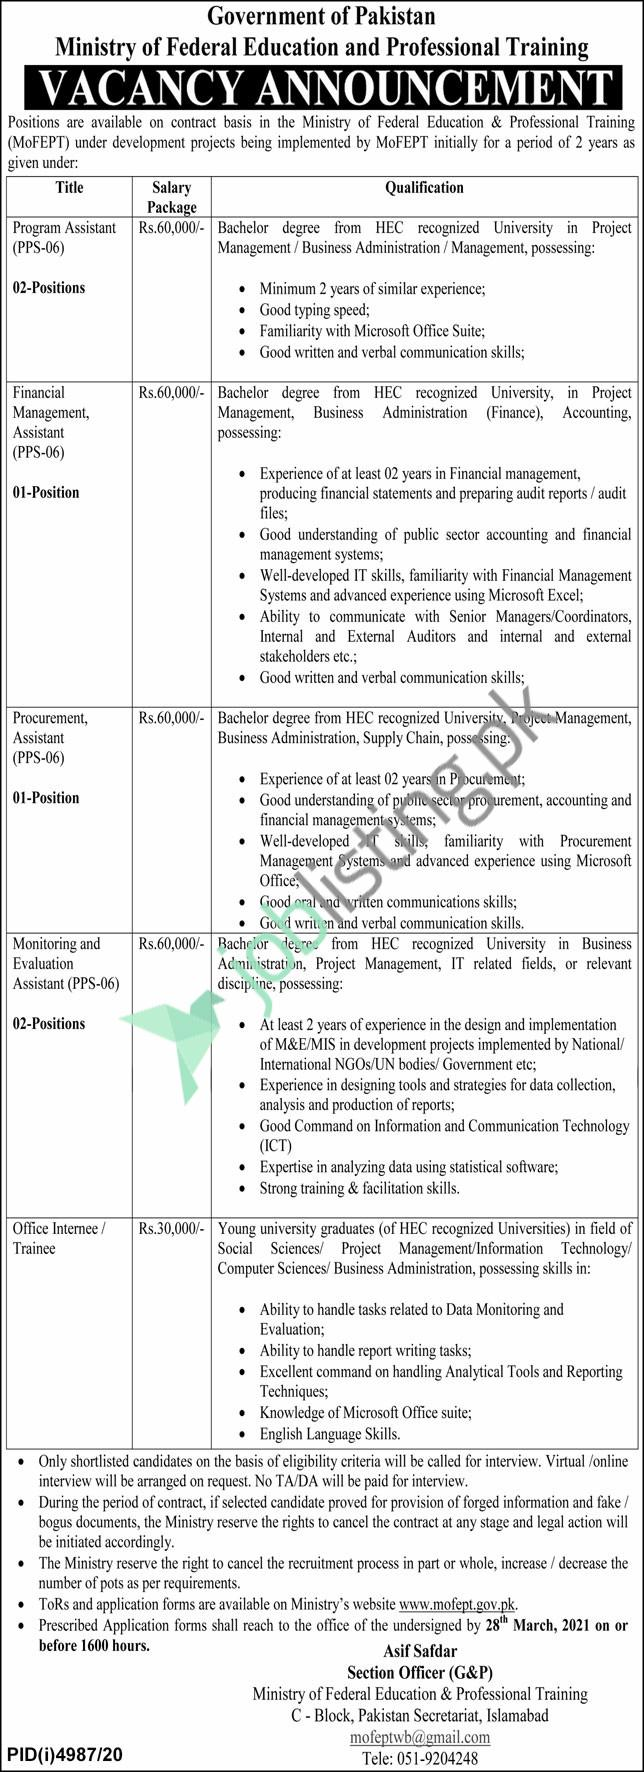 Ministry of Federal Education & Professional Training Jobs 2021